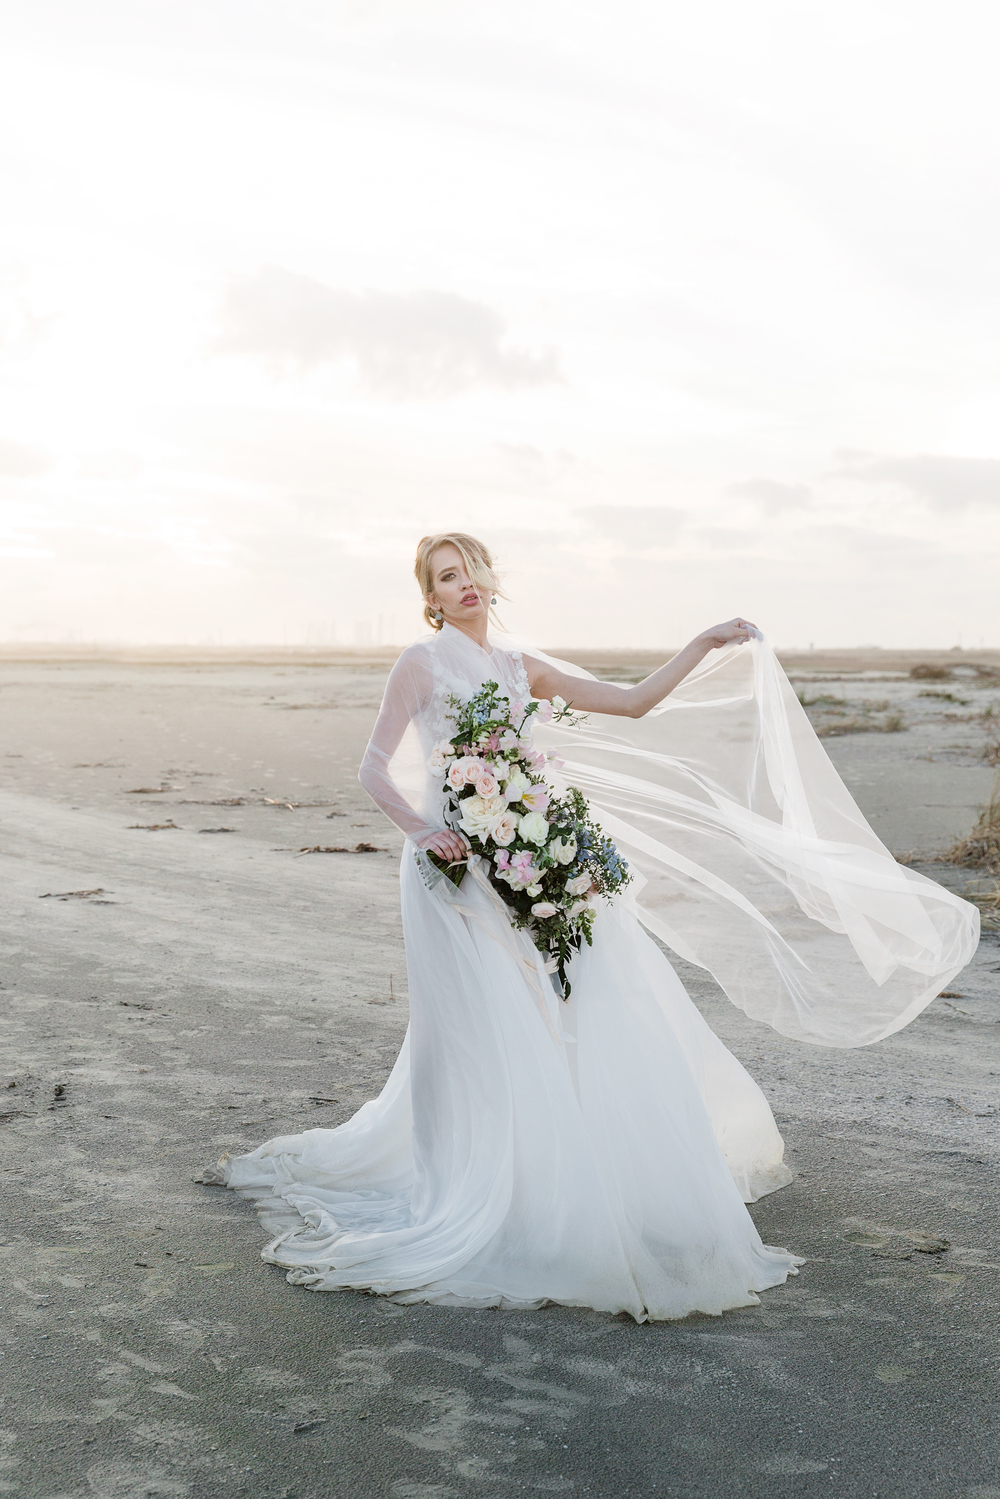 Floral Design  by   Mibellarosa Designs   | Vintage Rentals  from   The Borrowed Flea   |  Bridal Makeup  by   Blush-worthy   |  Bridal Hairstyling  by   Updo Gypsy   |  Modeled  by   Tabitha Wimberly